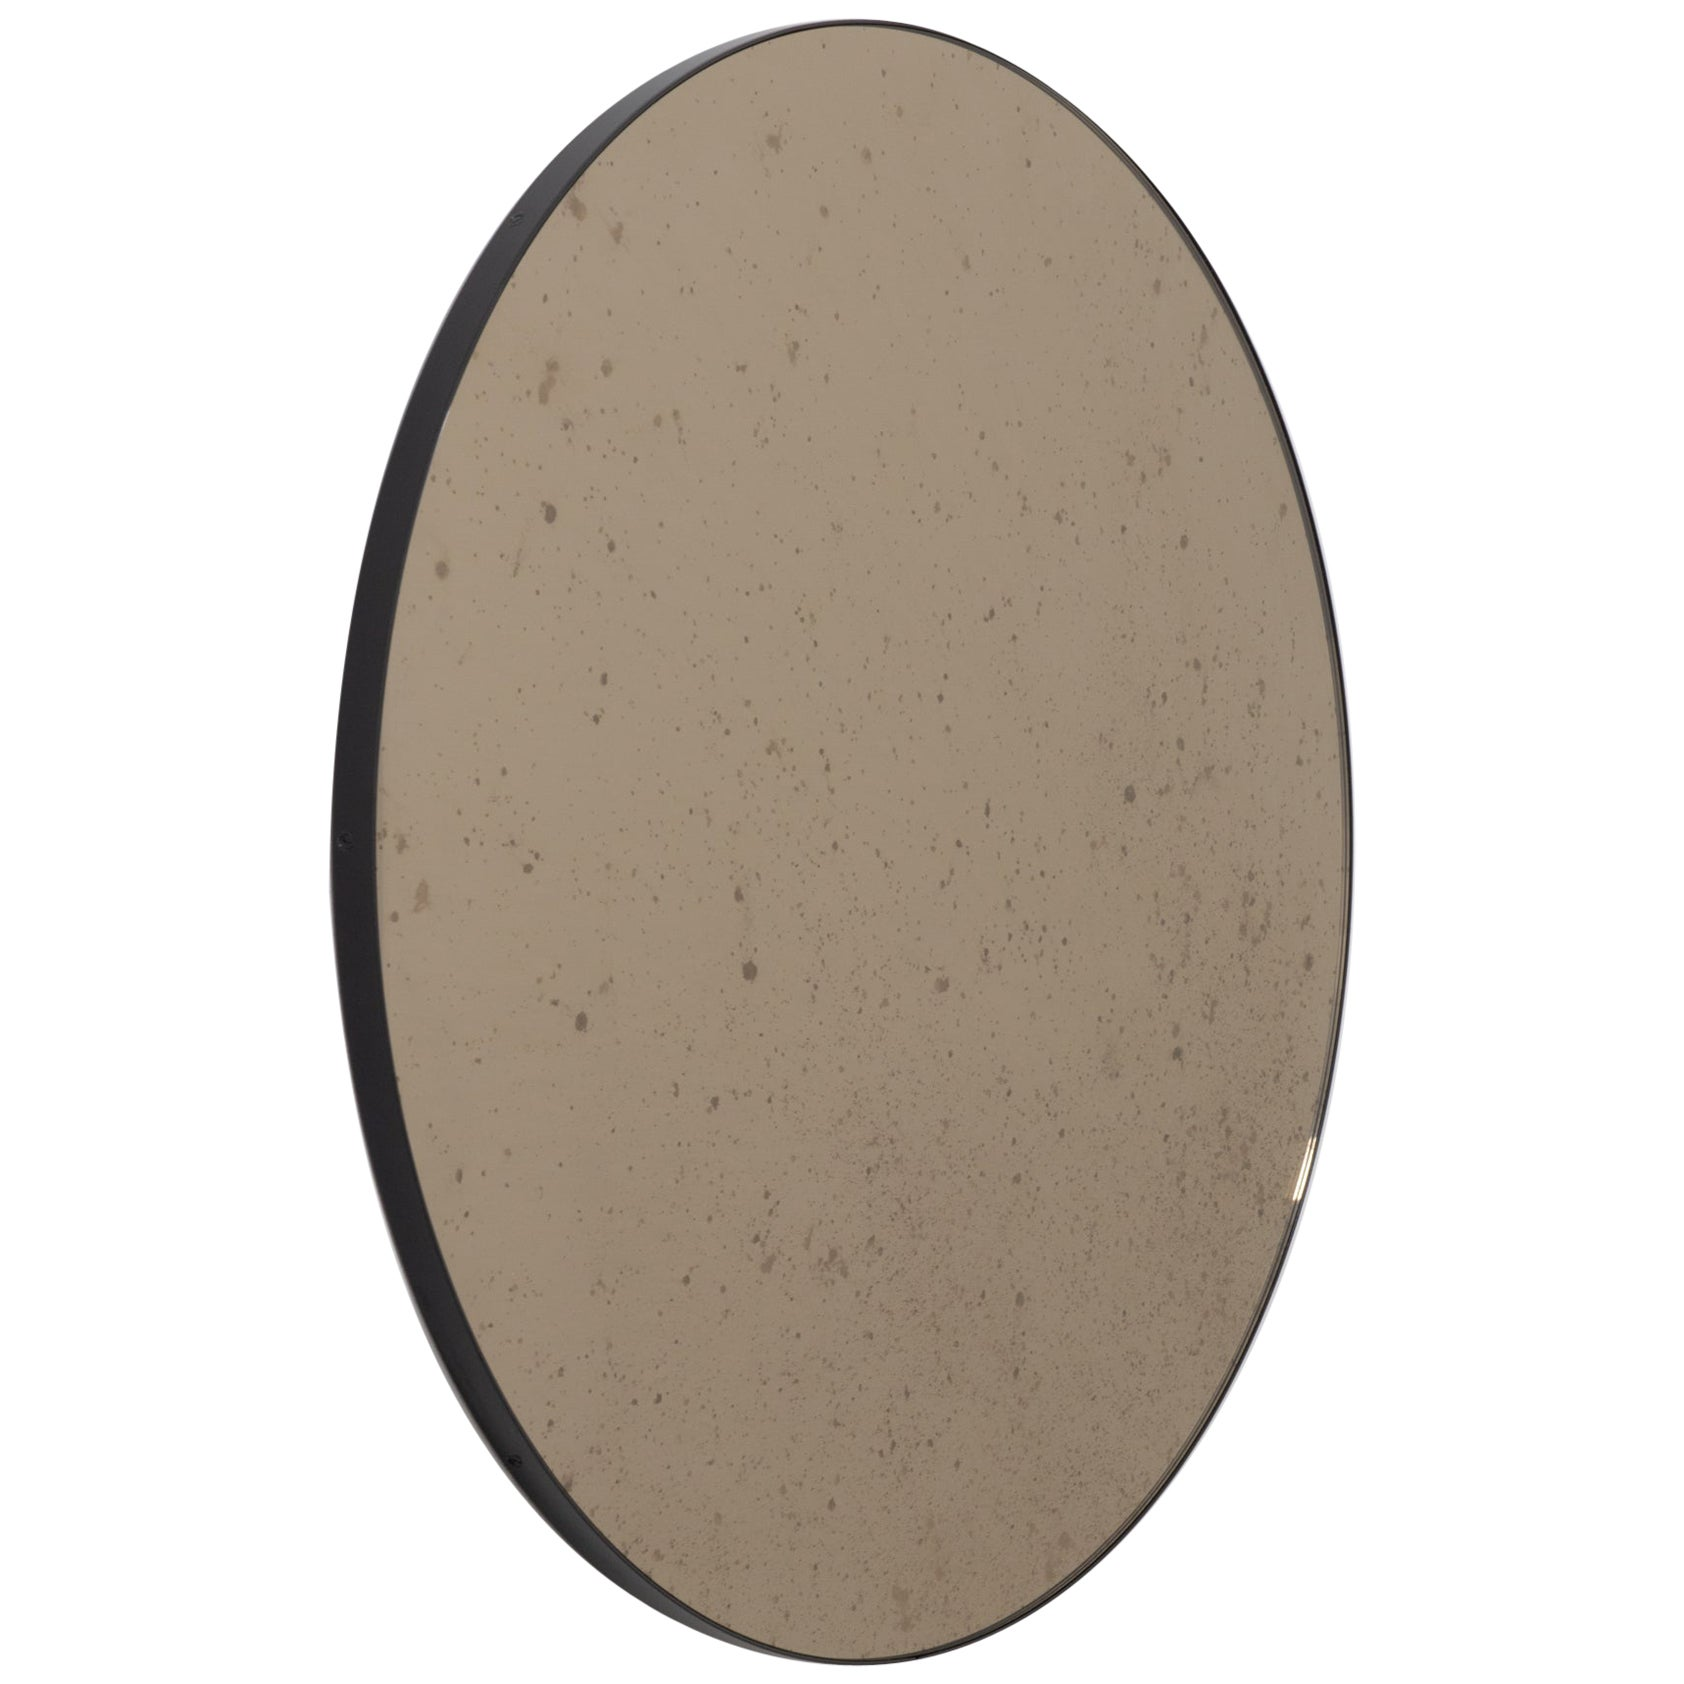 Orbis Antiqued Bronze Tinted Modern Round Mirror with a Black Frame, Small